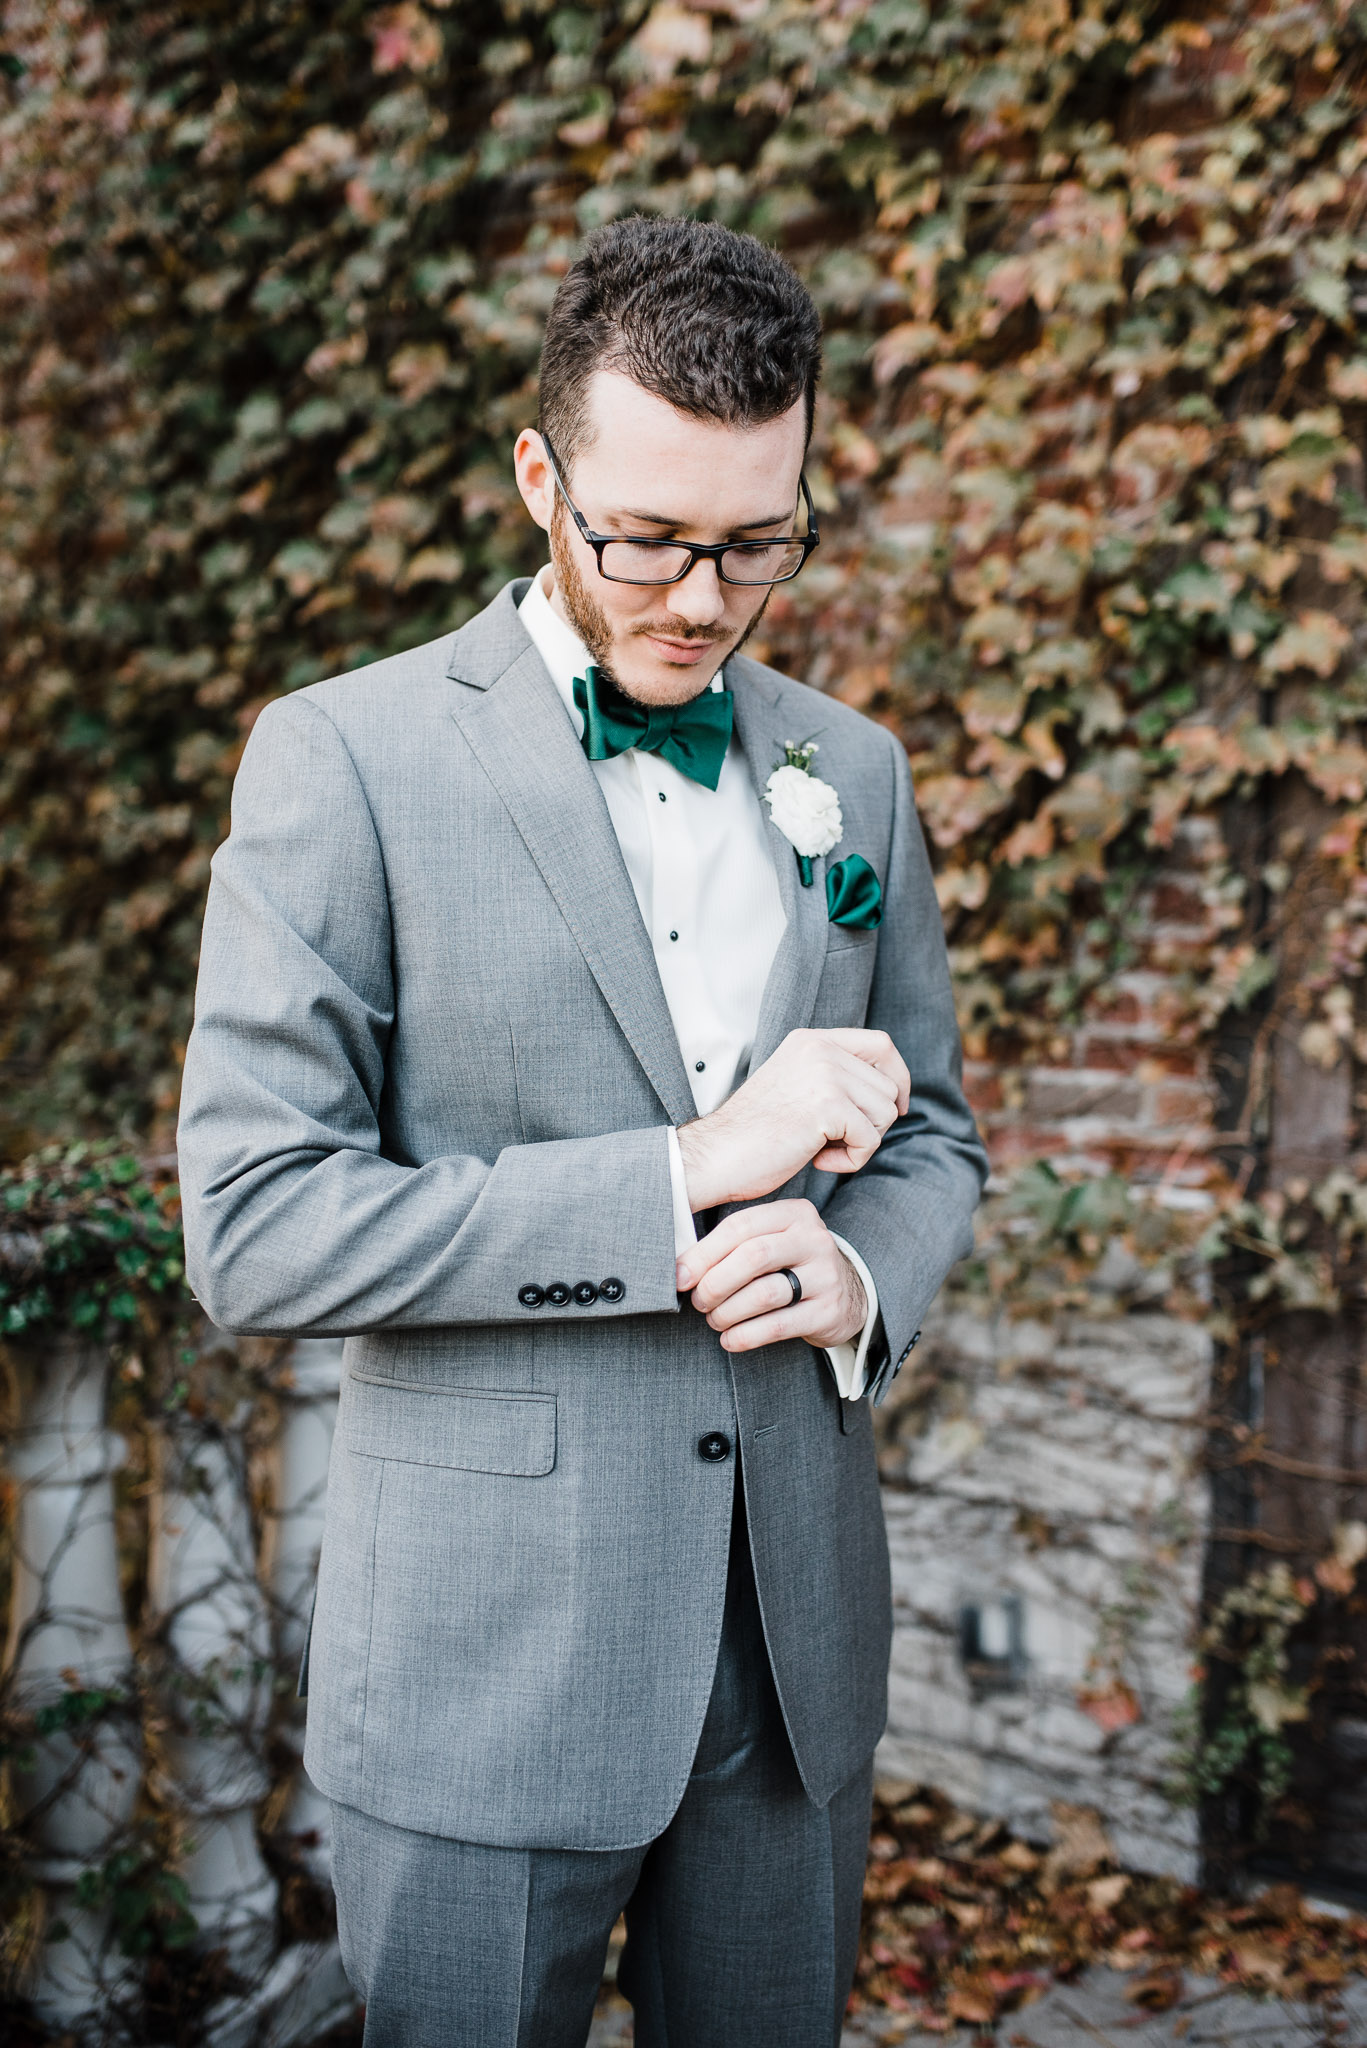 Groom stands to get his suit photographed